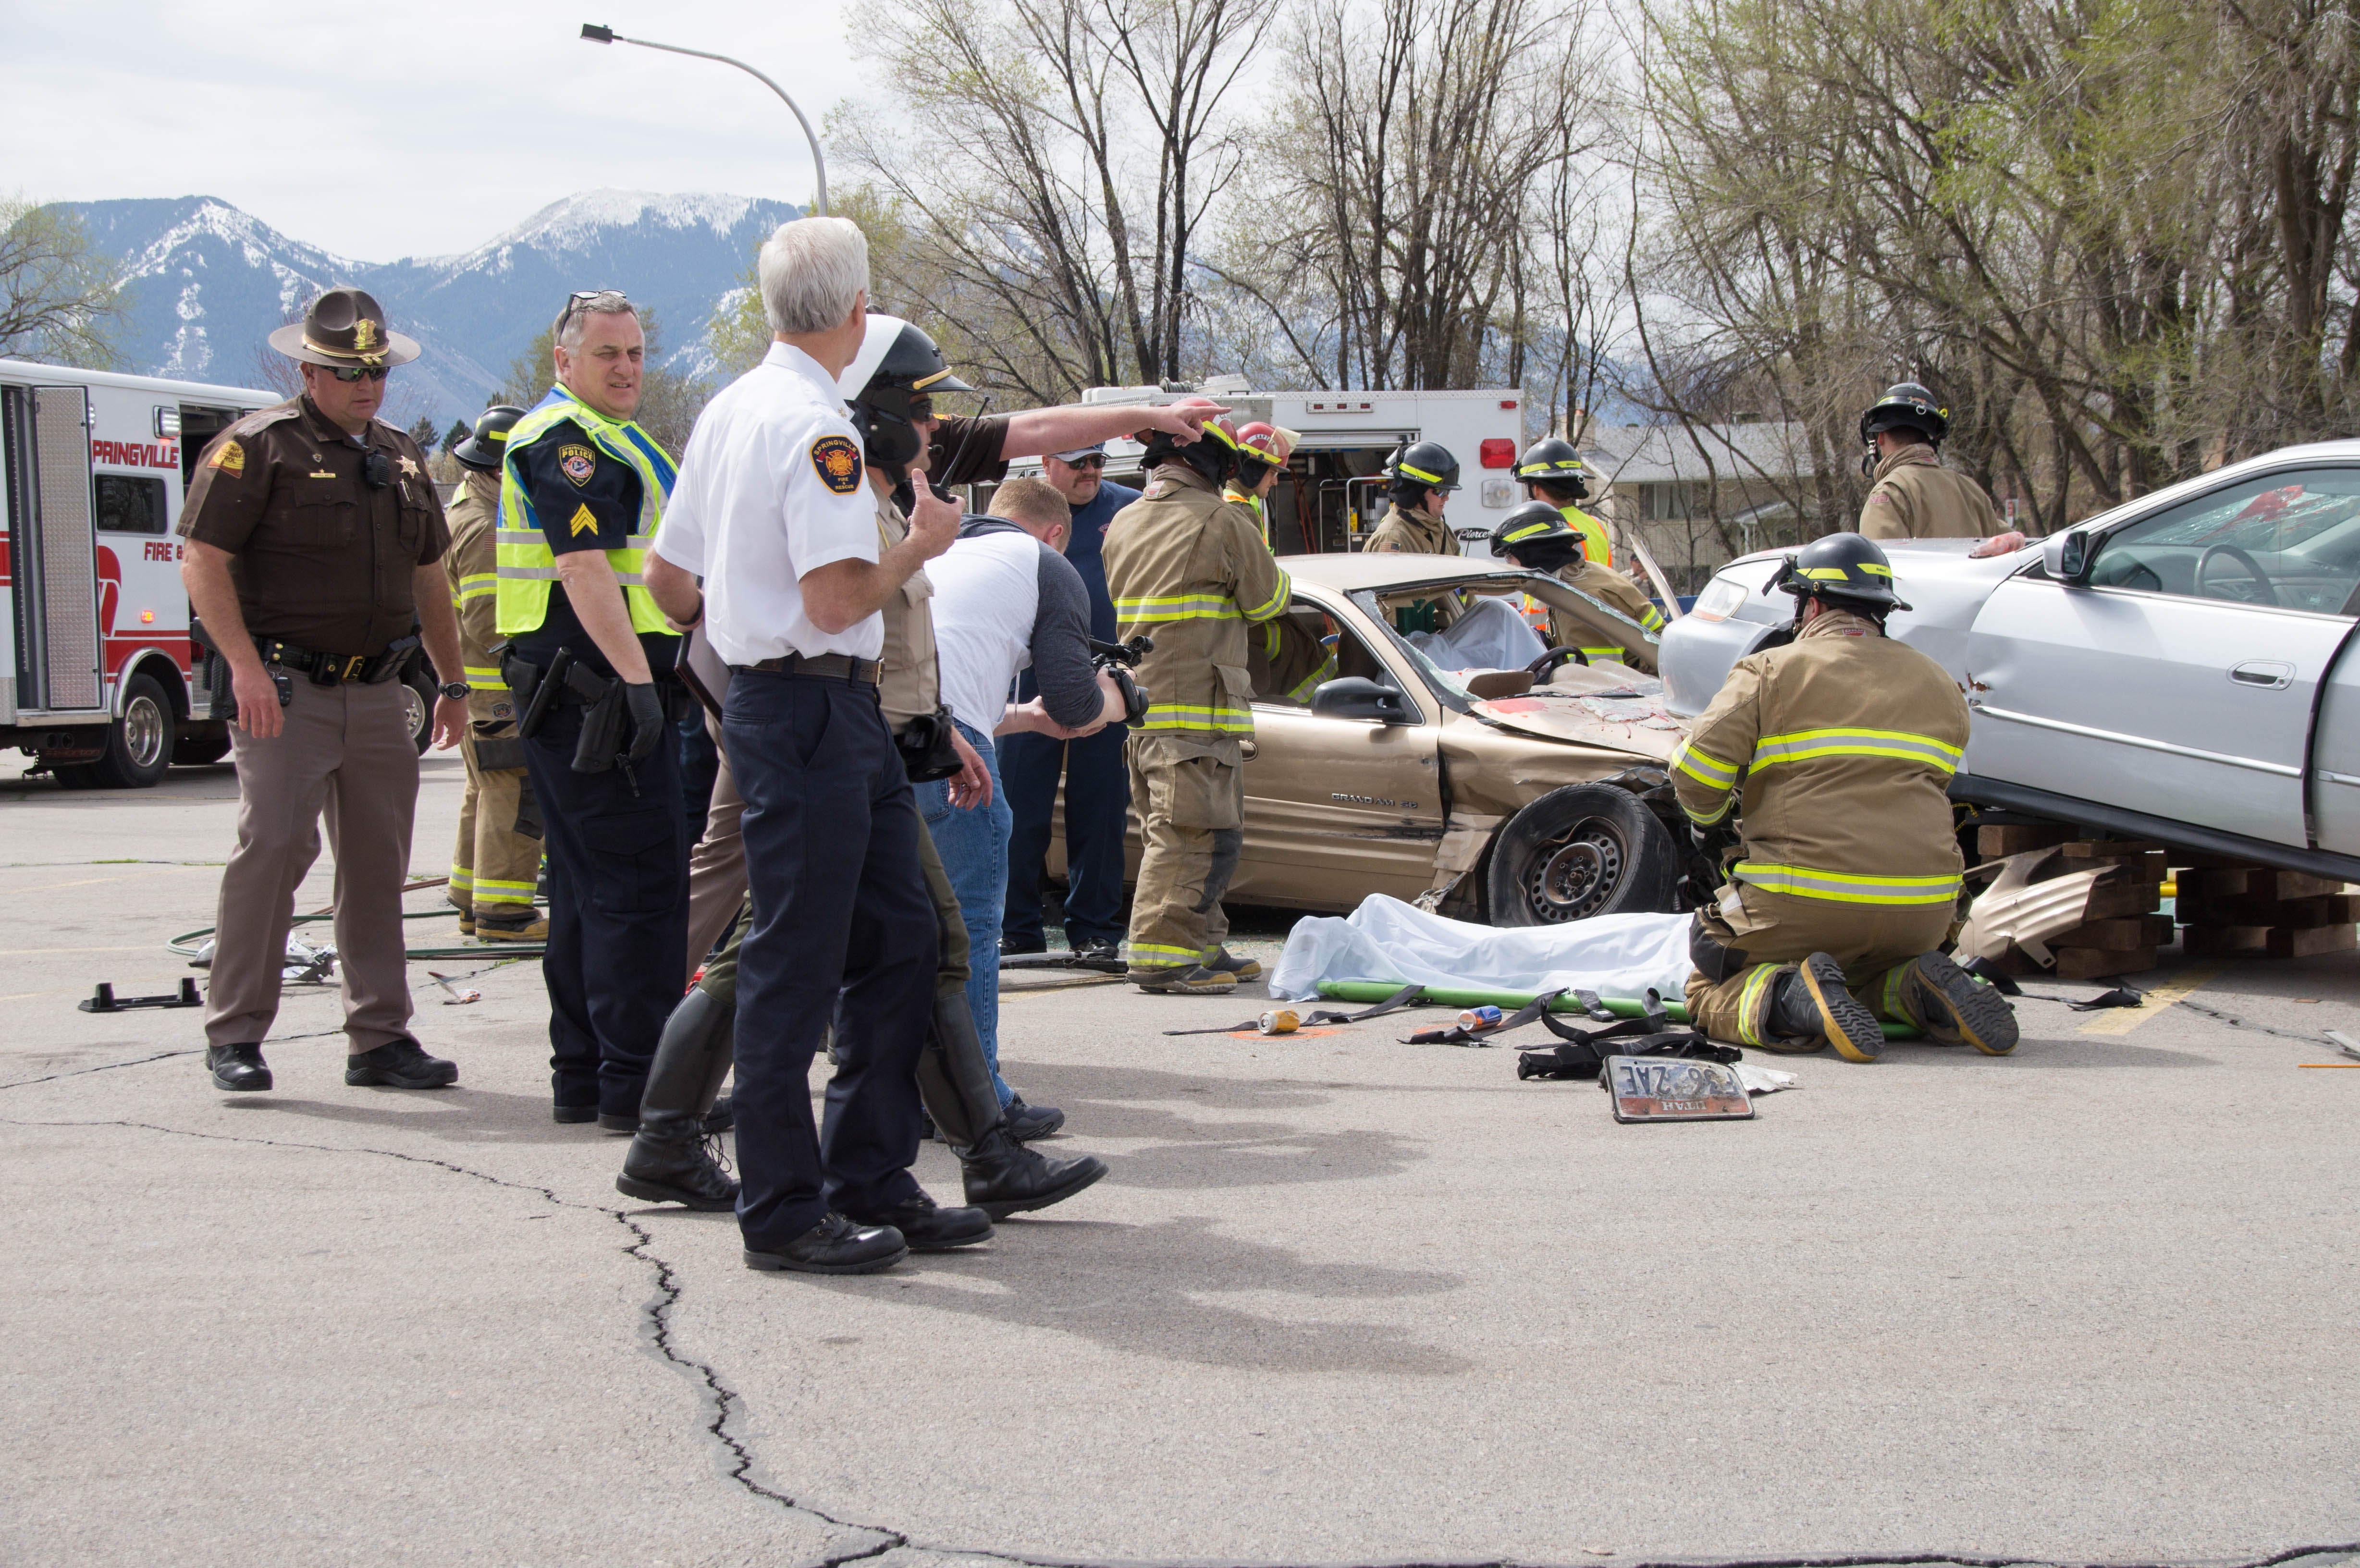 UHP, Springville PD, SPringville Fire and Rescue, Utah County Sheriff's Office and Lifeflight teamed up to conduct a mock crash at Springville High School on April 10th.